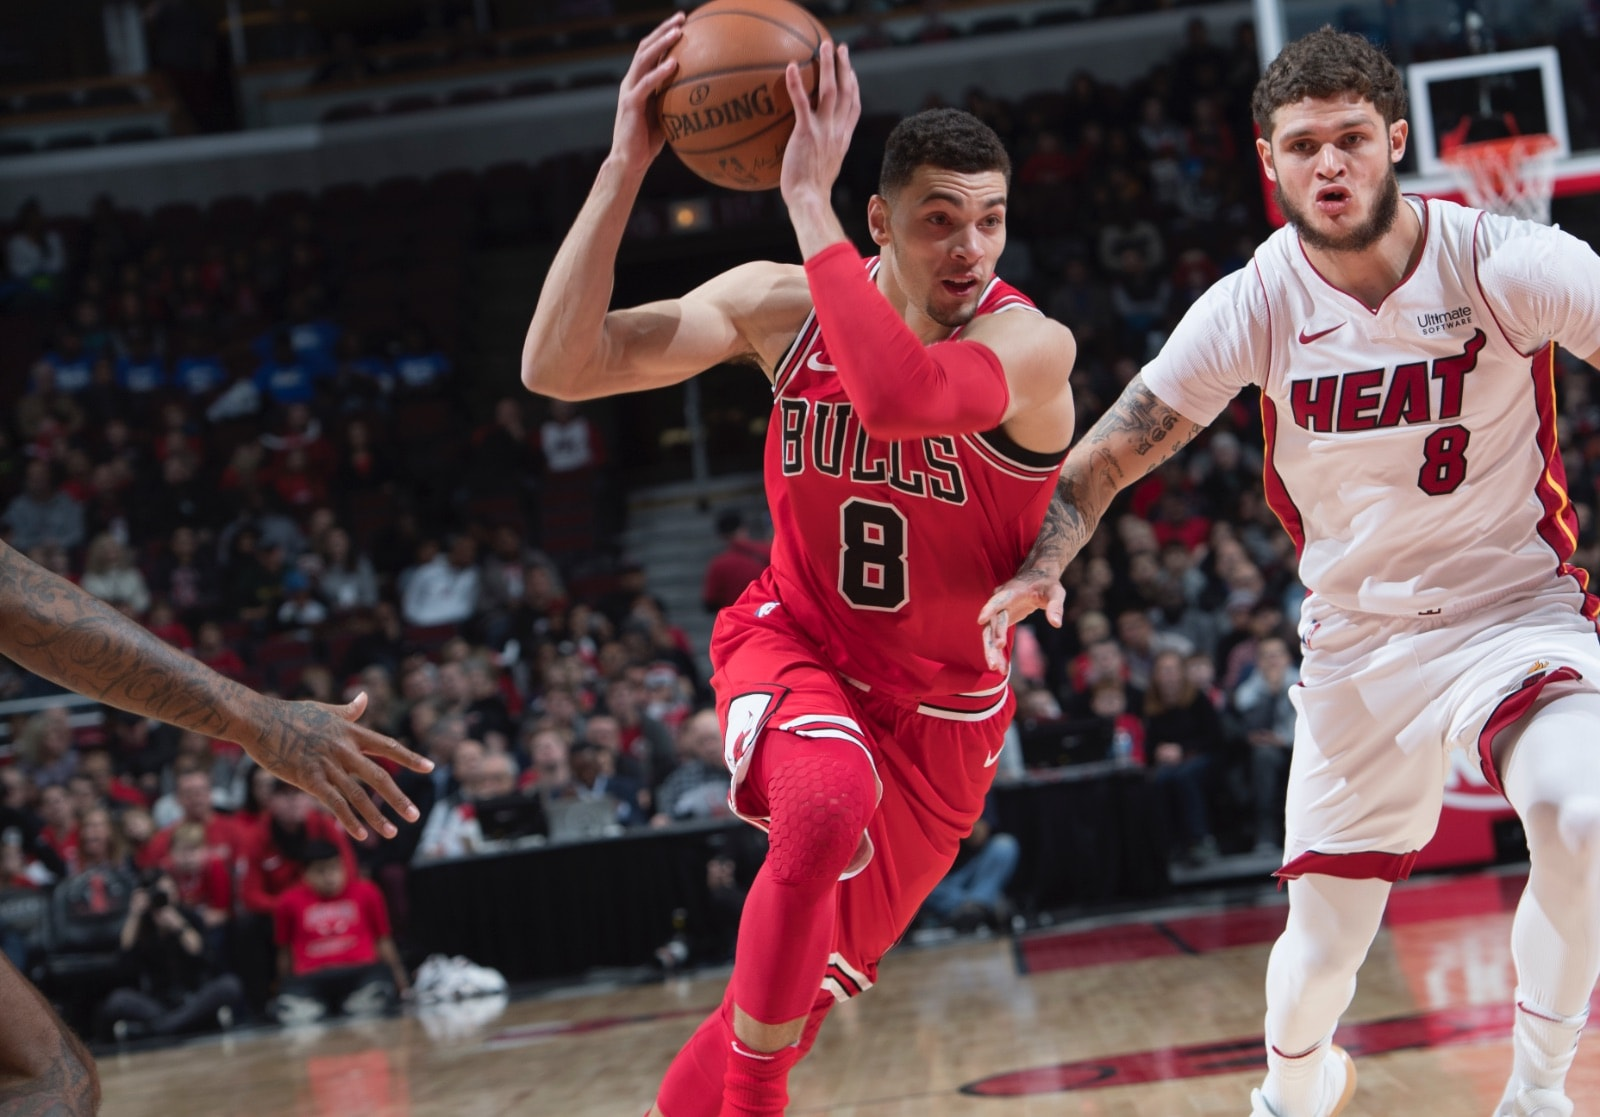 Kings' attempt to sign Zach LaVine forces them to waive a player